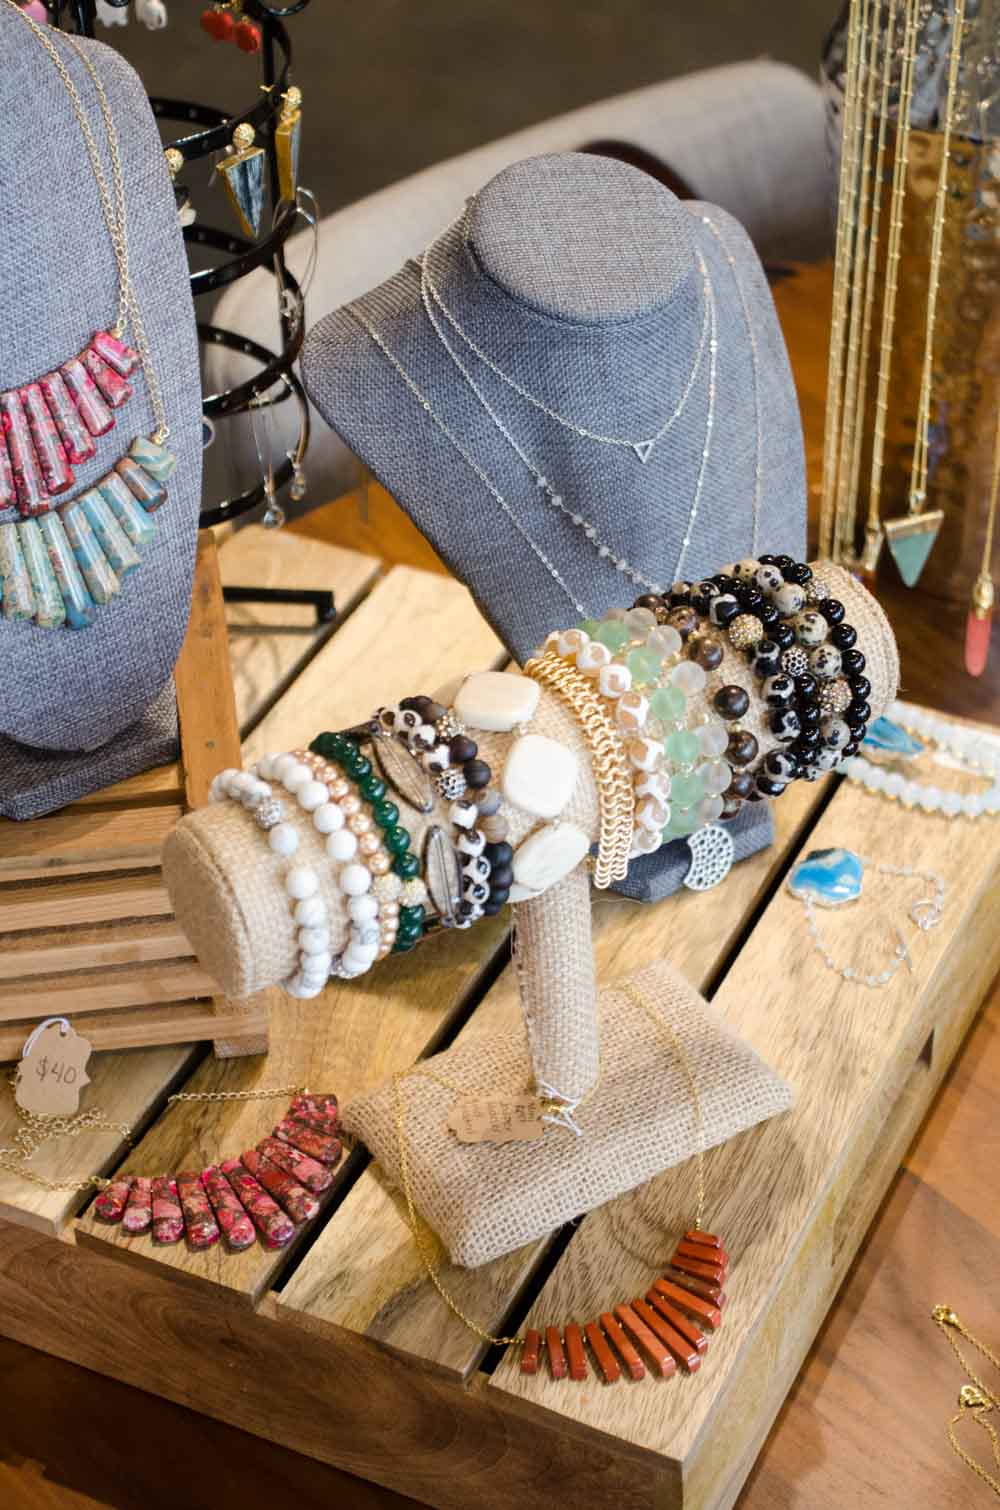 Green End Designs jewelry at West Elm Local Pop-Up